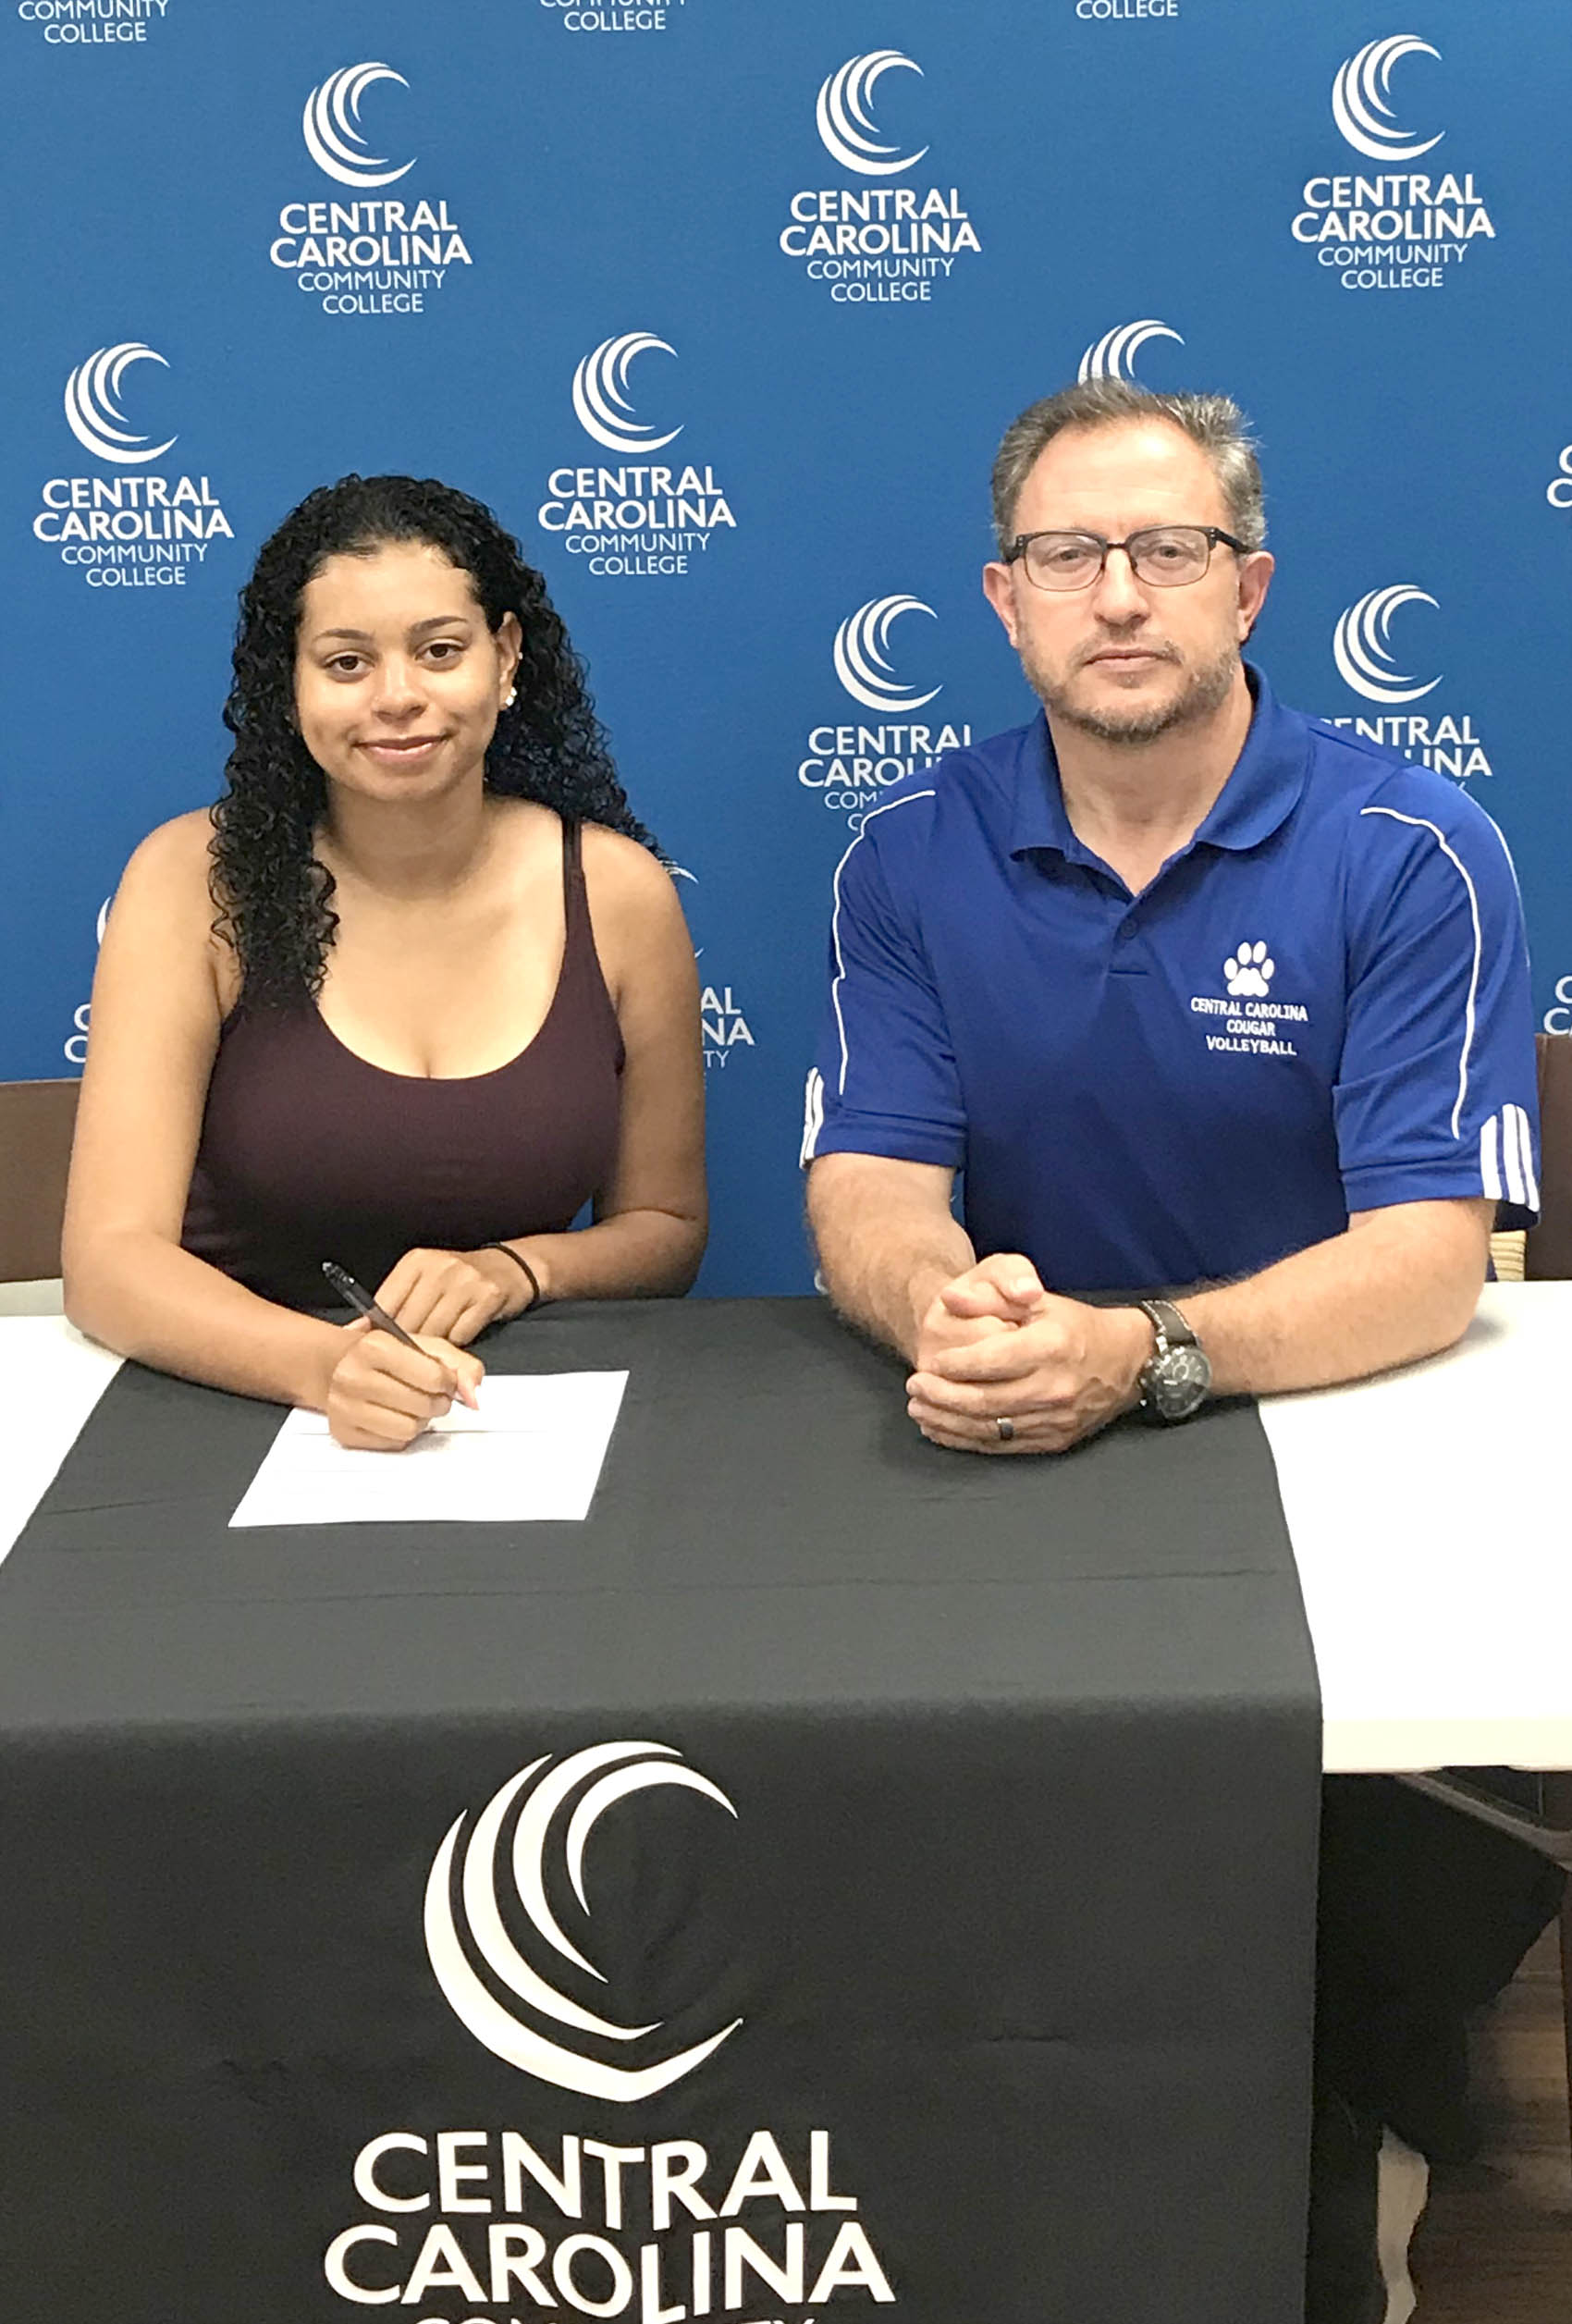 Click to enlarge,  Kayla Stange (left), who attended Overhills High School in Harnett County, will join the CCCC volleyball program. She is pictured with CCCC Volleyball Coach Bill Carter (right).